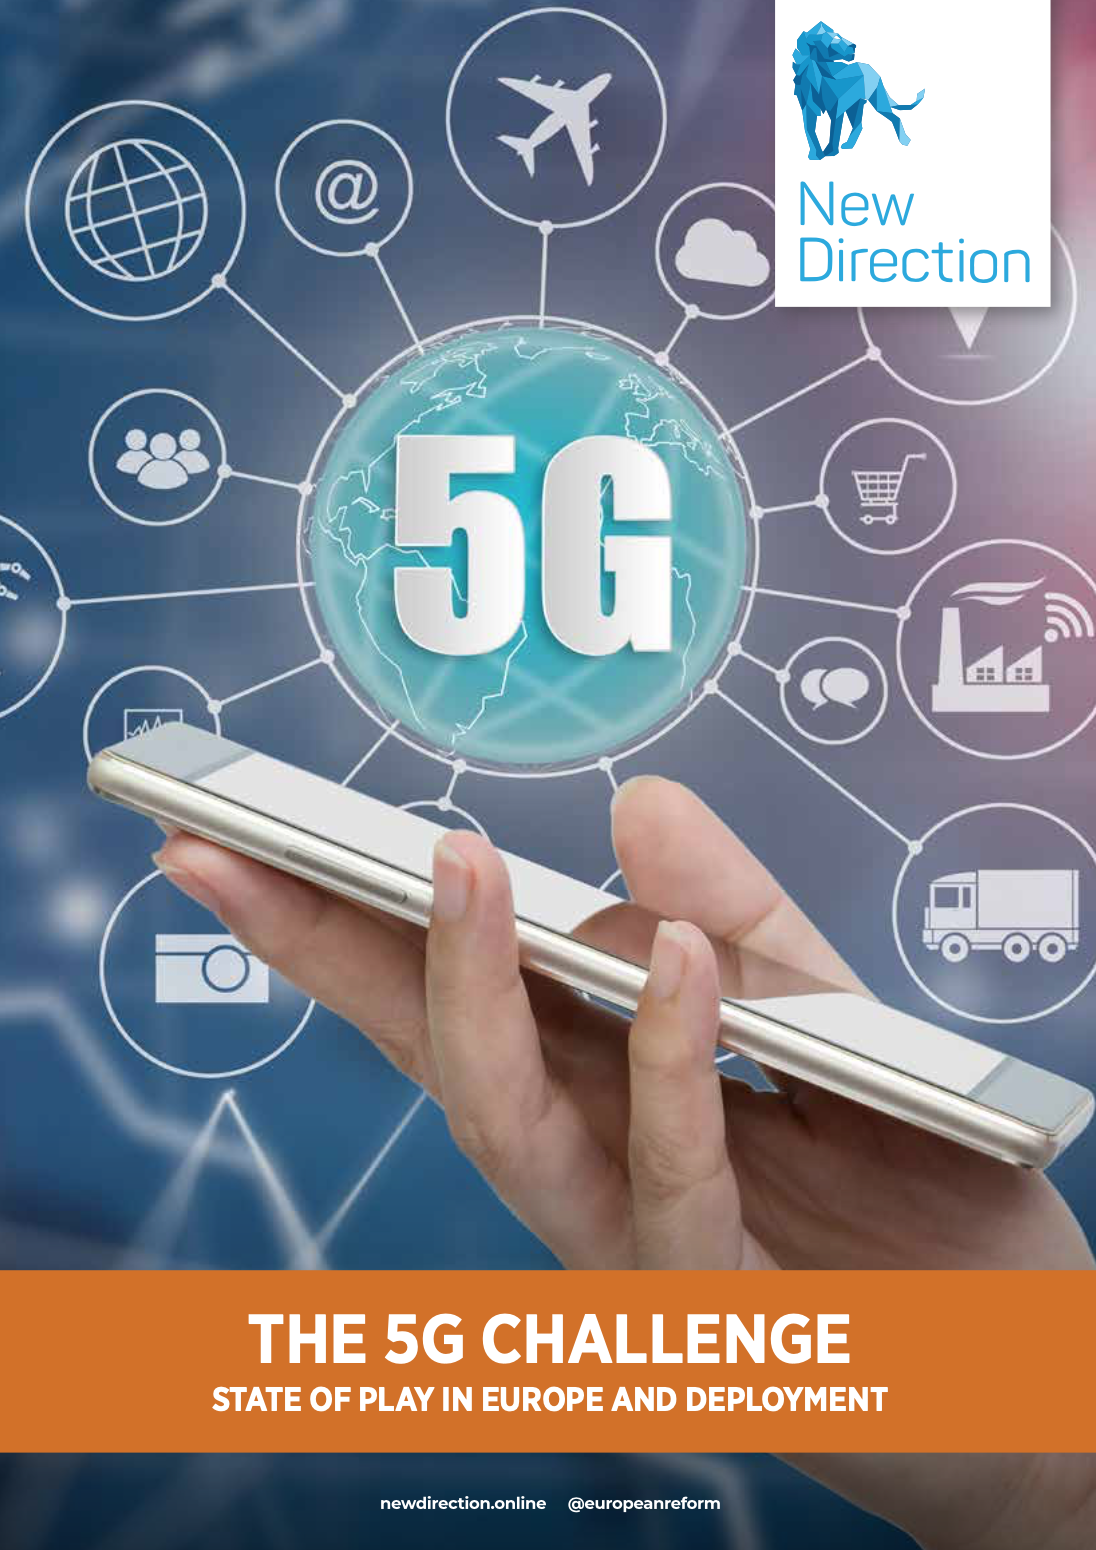 THE 5G CHALLENGE STATE OF PLAY IN EUROPE AND DEPLOYMENT